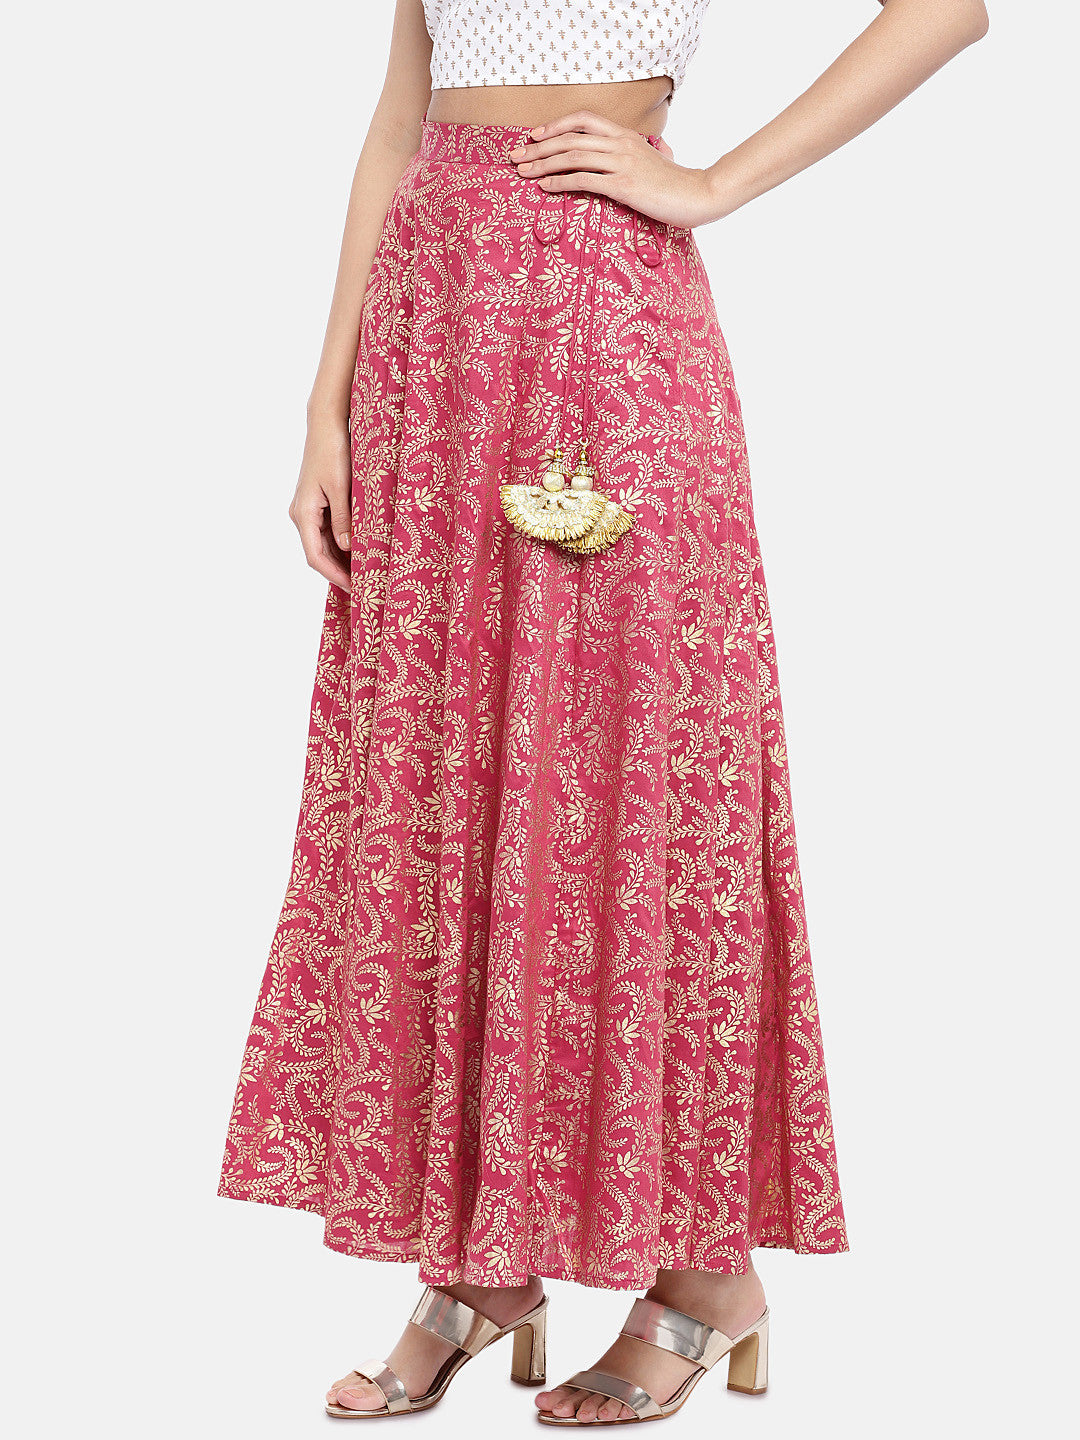 Pink & Gold-Toned Printed Flared Skirt-2